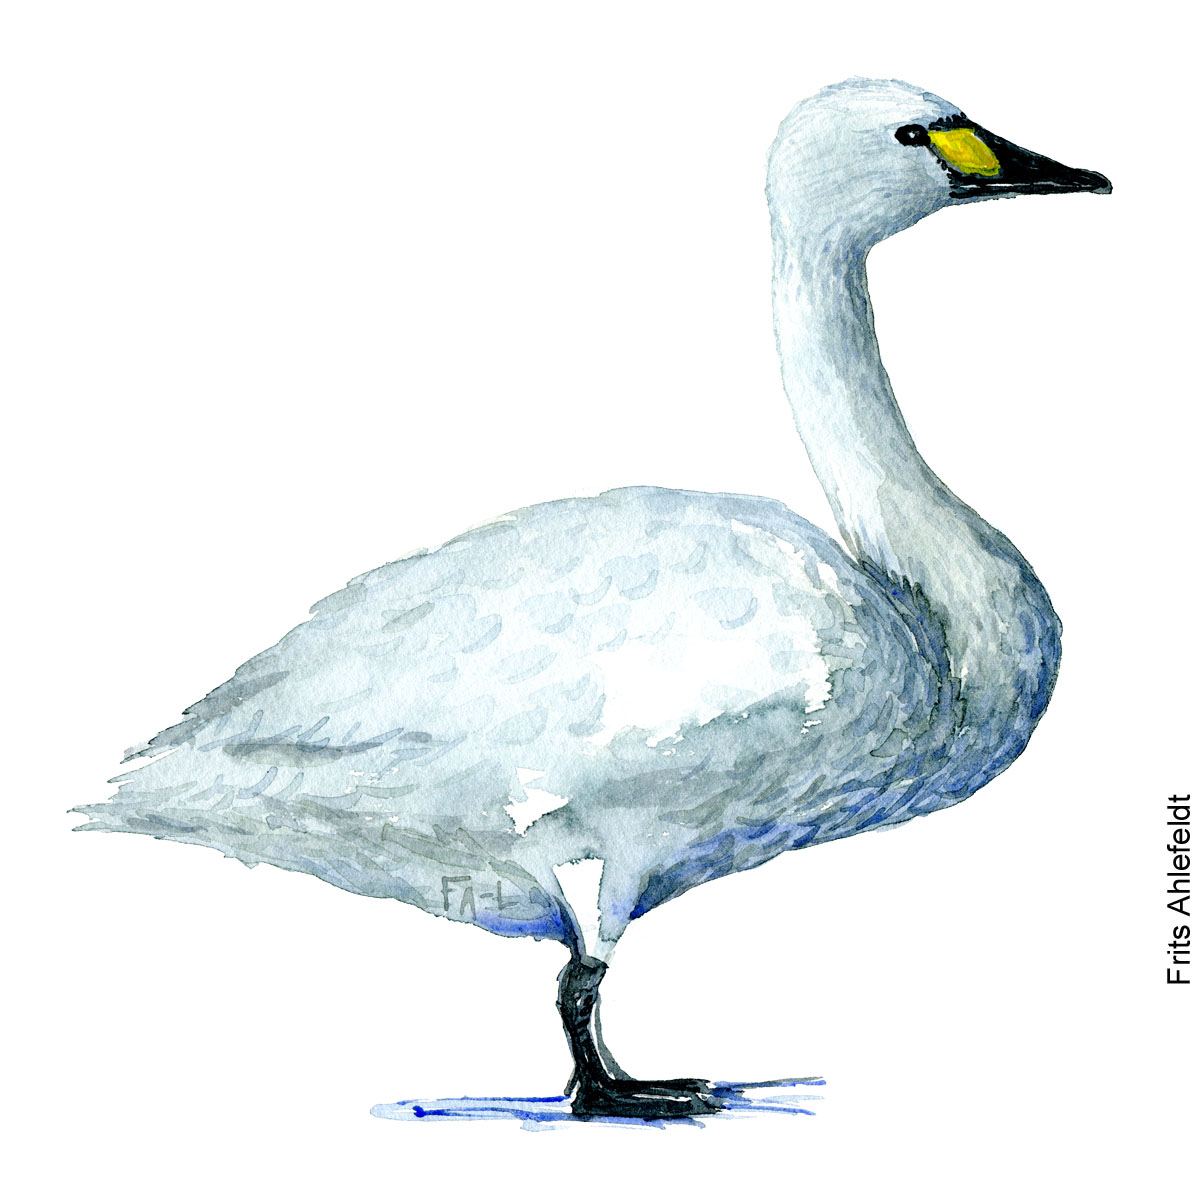 Watercolor of Tundra swan - Bewick's swan / Whistling swan (Pibesvane, TundraSchwan, Cygnus columbianus ) Biodiversity illustration by Frits Ahlefeldt